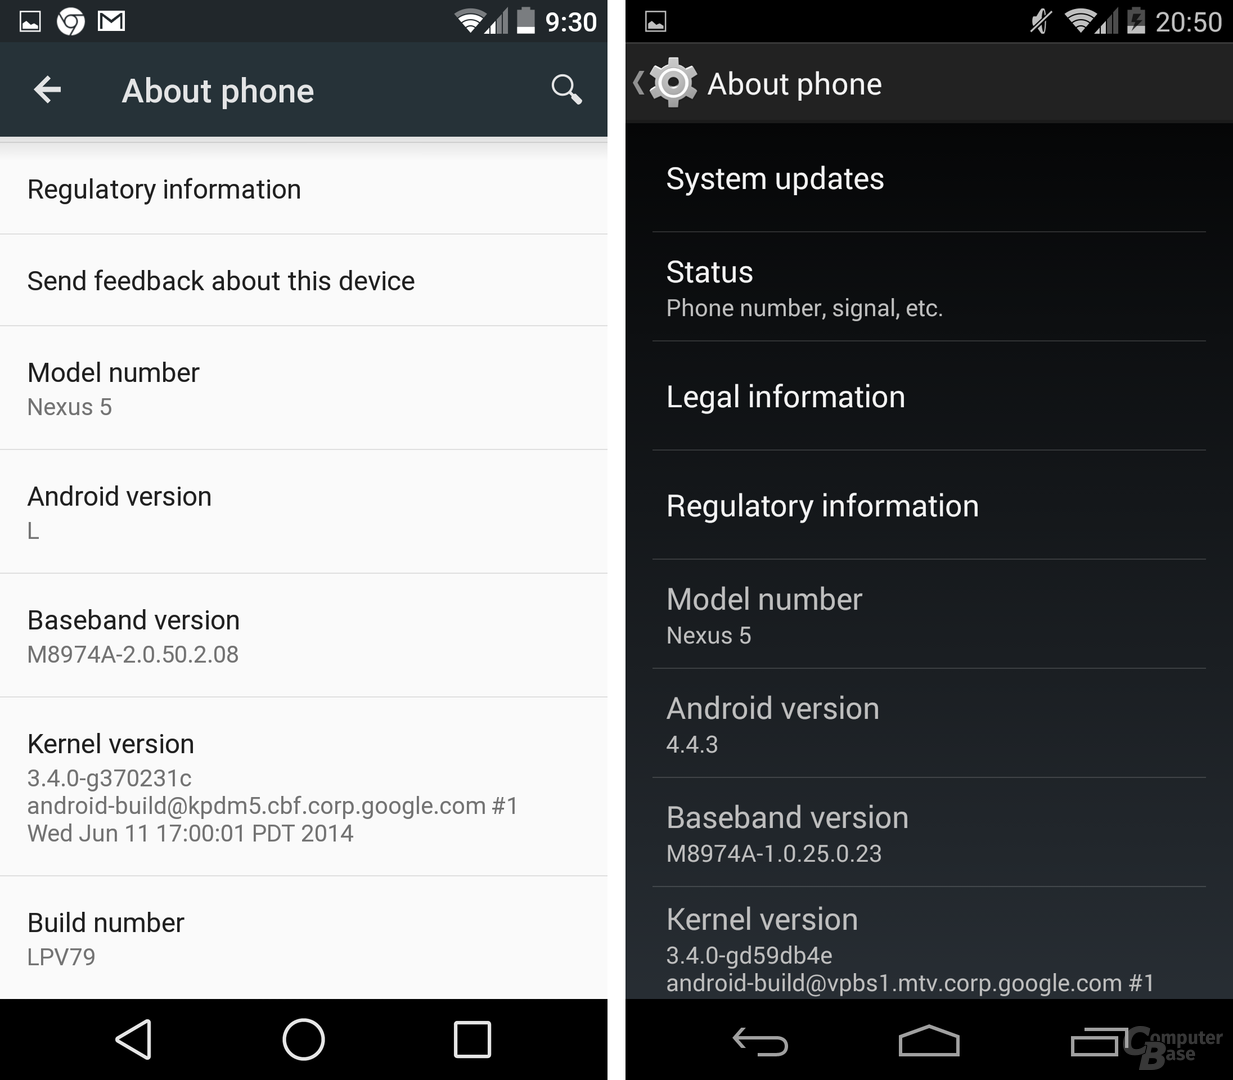 Android L / Android 4.4 KitKat – Über das Telefon